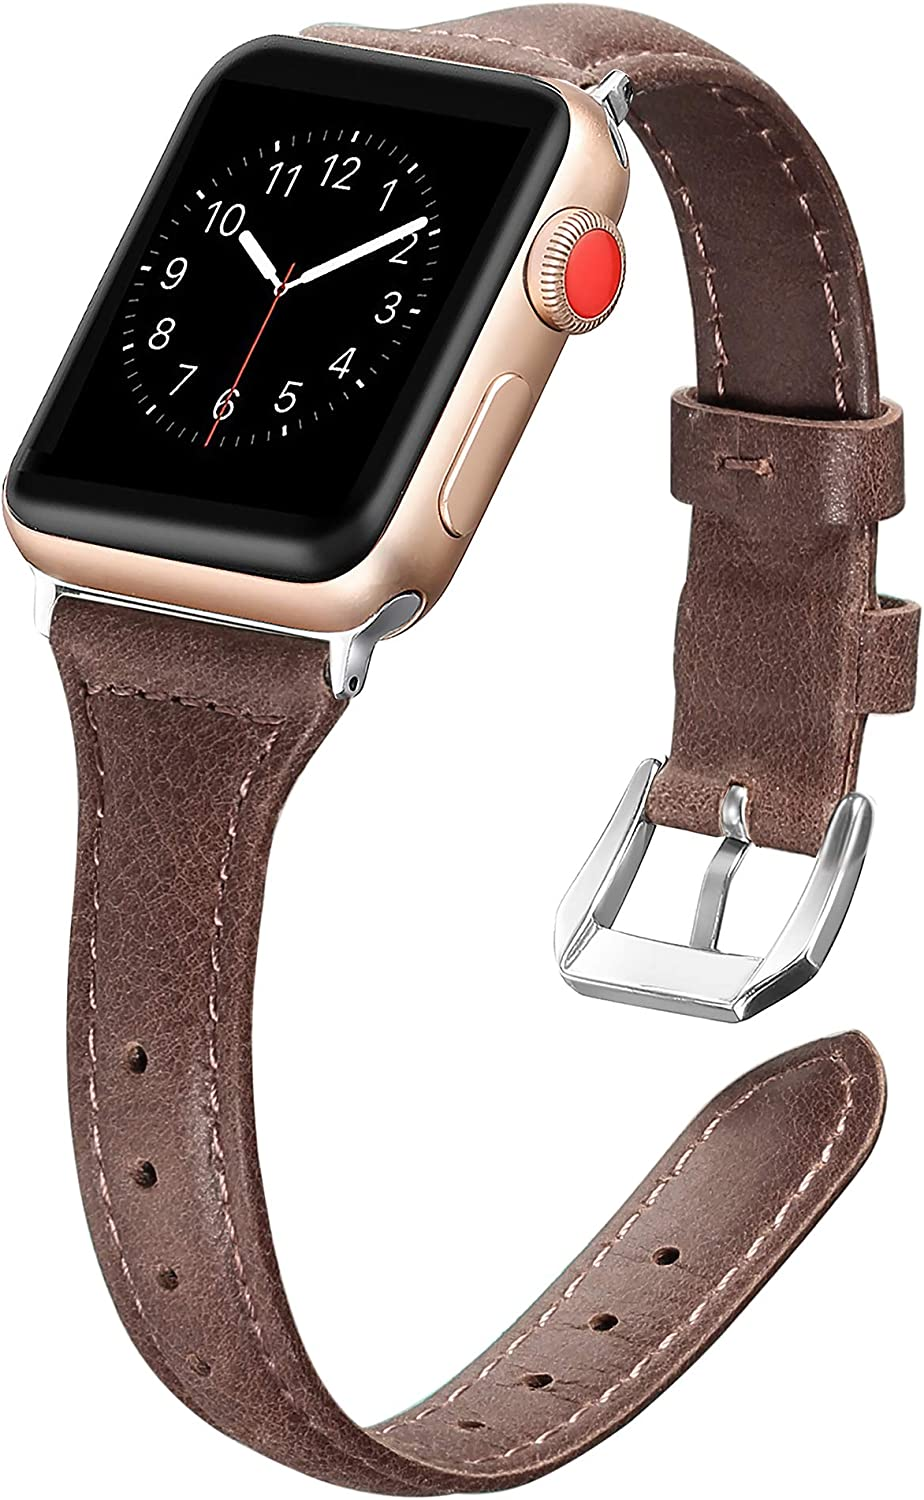 Secbolt Leather Compatible with Apple Watch Band 42mm 44mm Slim Replacement Wristband Sport Strap for Iwatch Series 6 5 4 3 2 1 Stainless Steel Buckle, Coffee